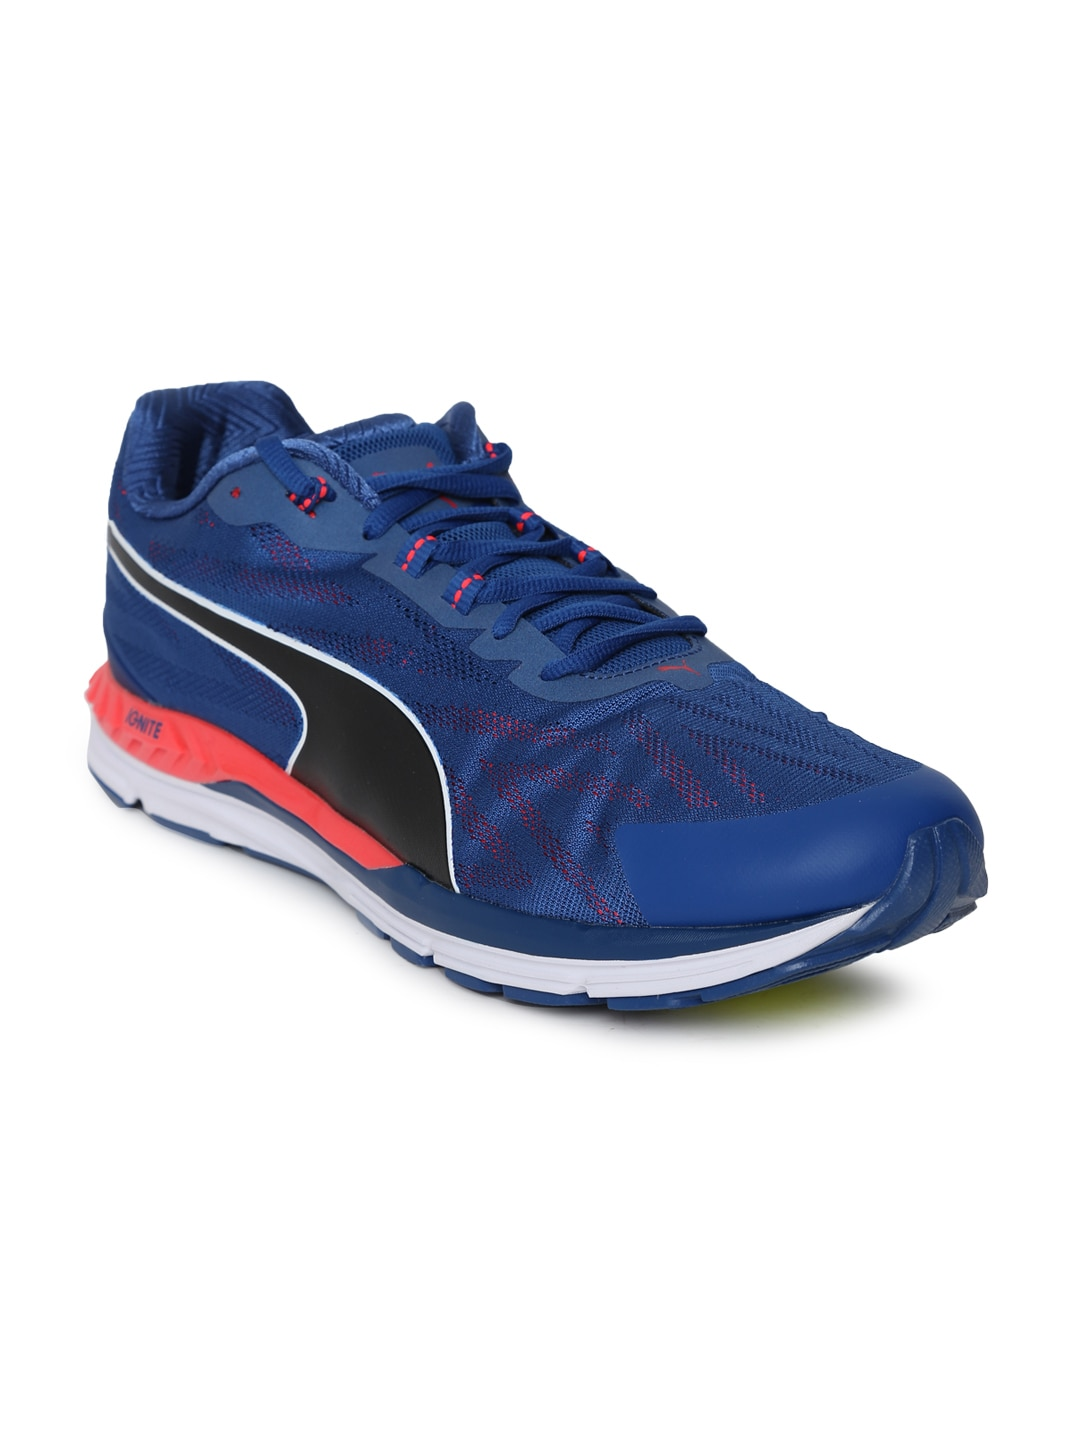 97b082ca2e61 Buy Puma Men Blue Speed 100 R IGNITE Running Shoes - Sports Shoes ...